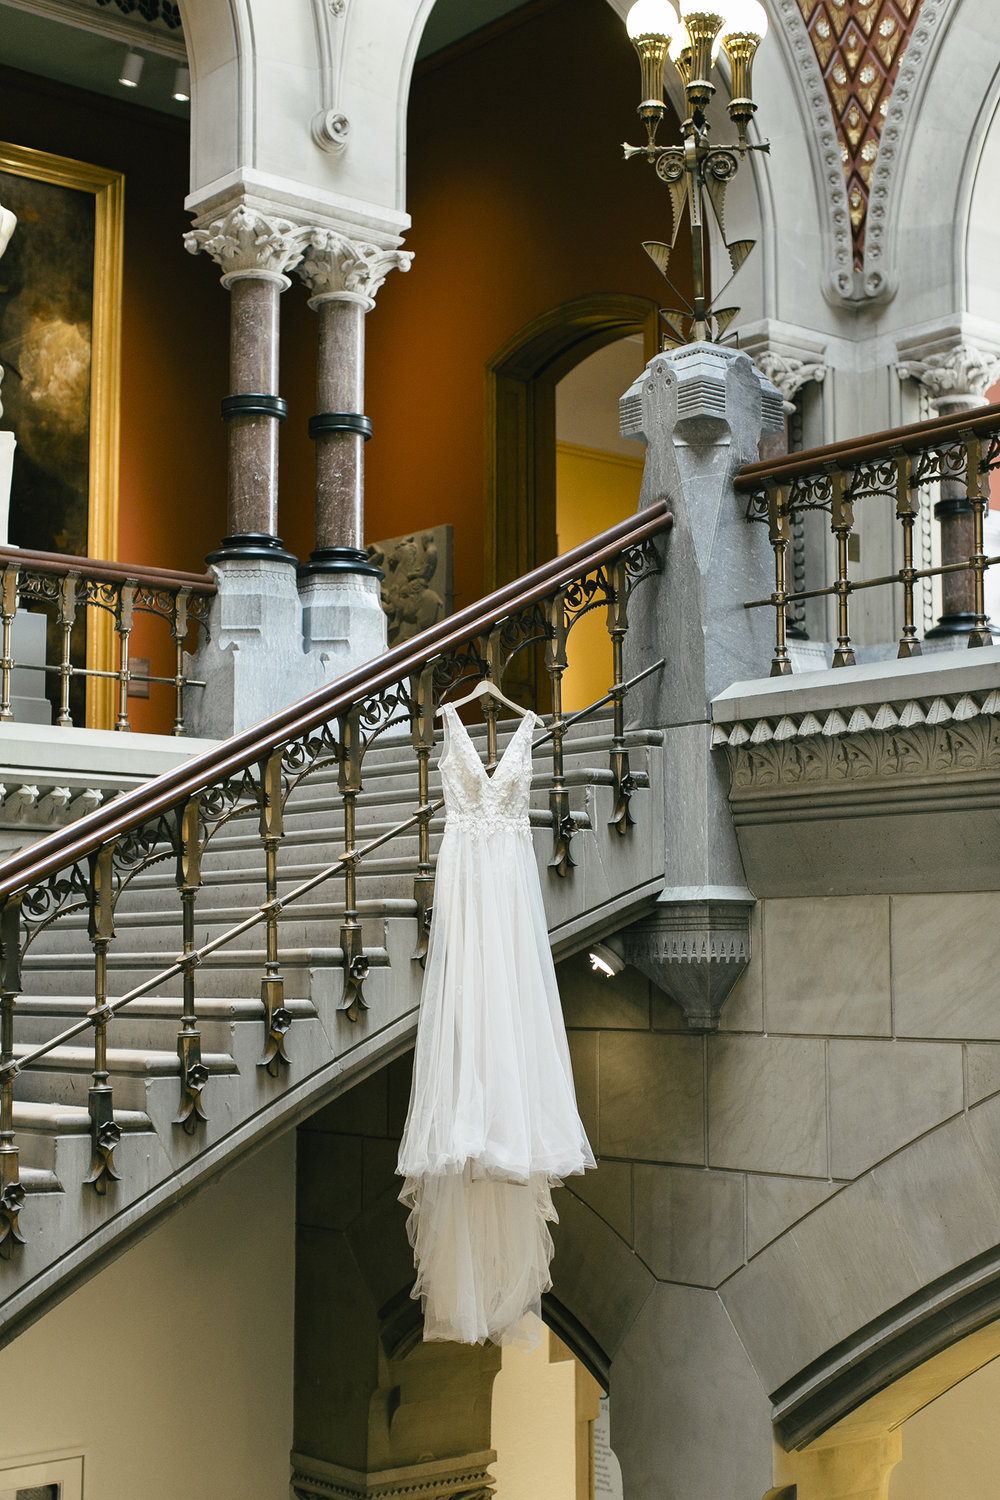 photography-wedding-weddings-natural-candid-pafa-pennsylvania academy-philadephia-philly-philadelphia wedding-mixed race-editorial-modern-fine-art-005.JPG